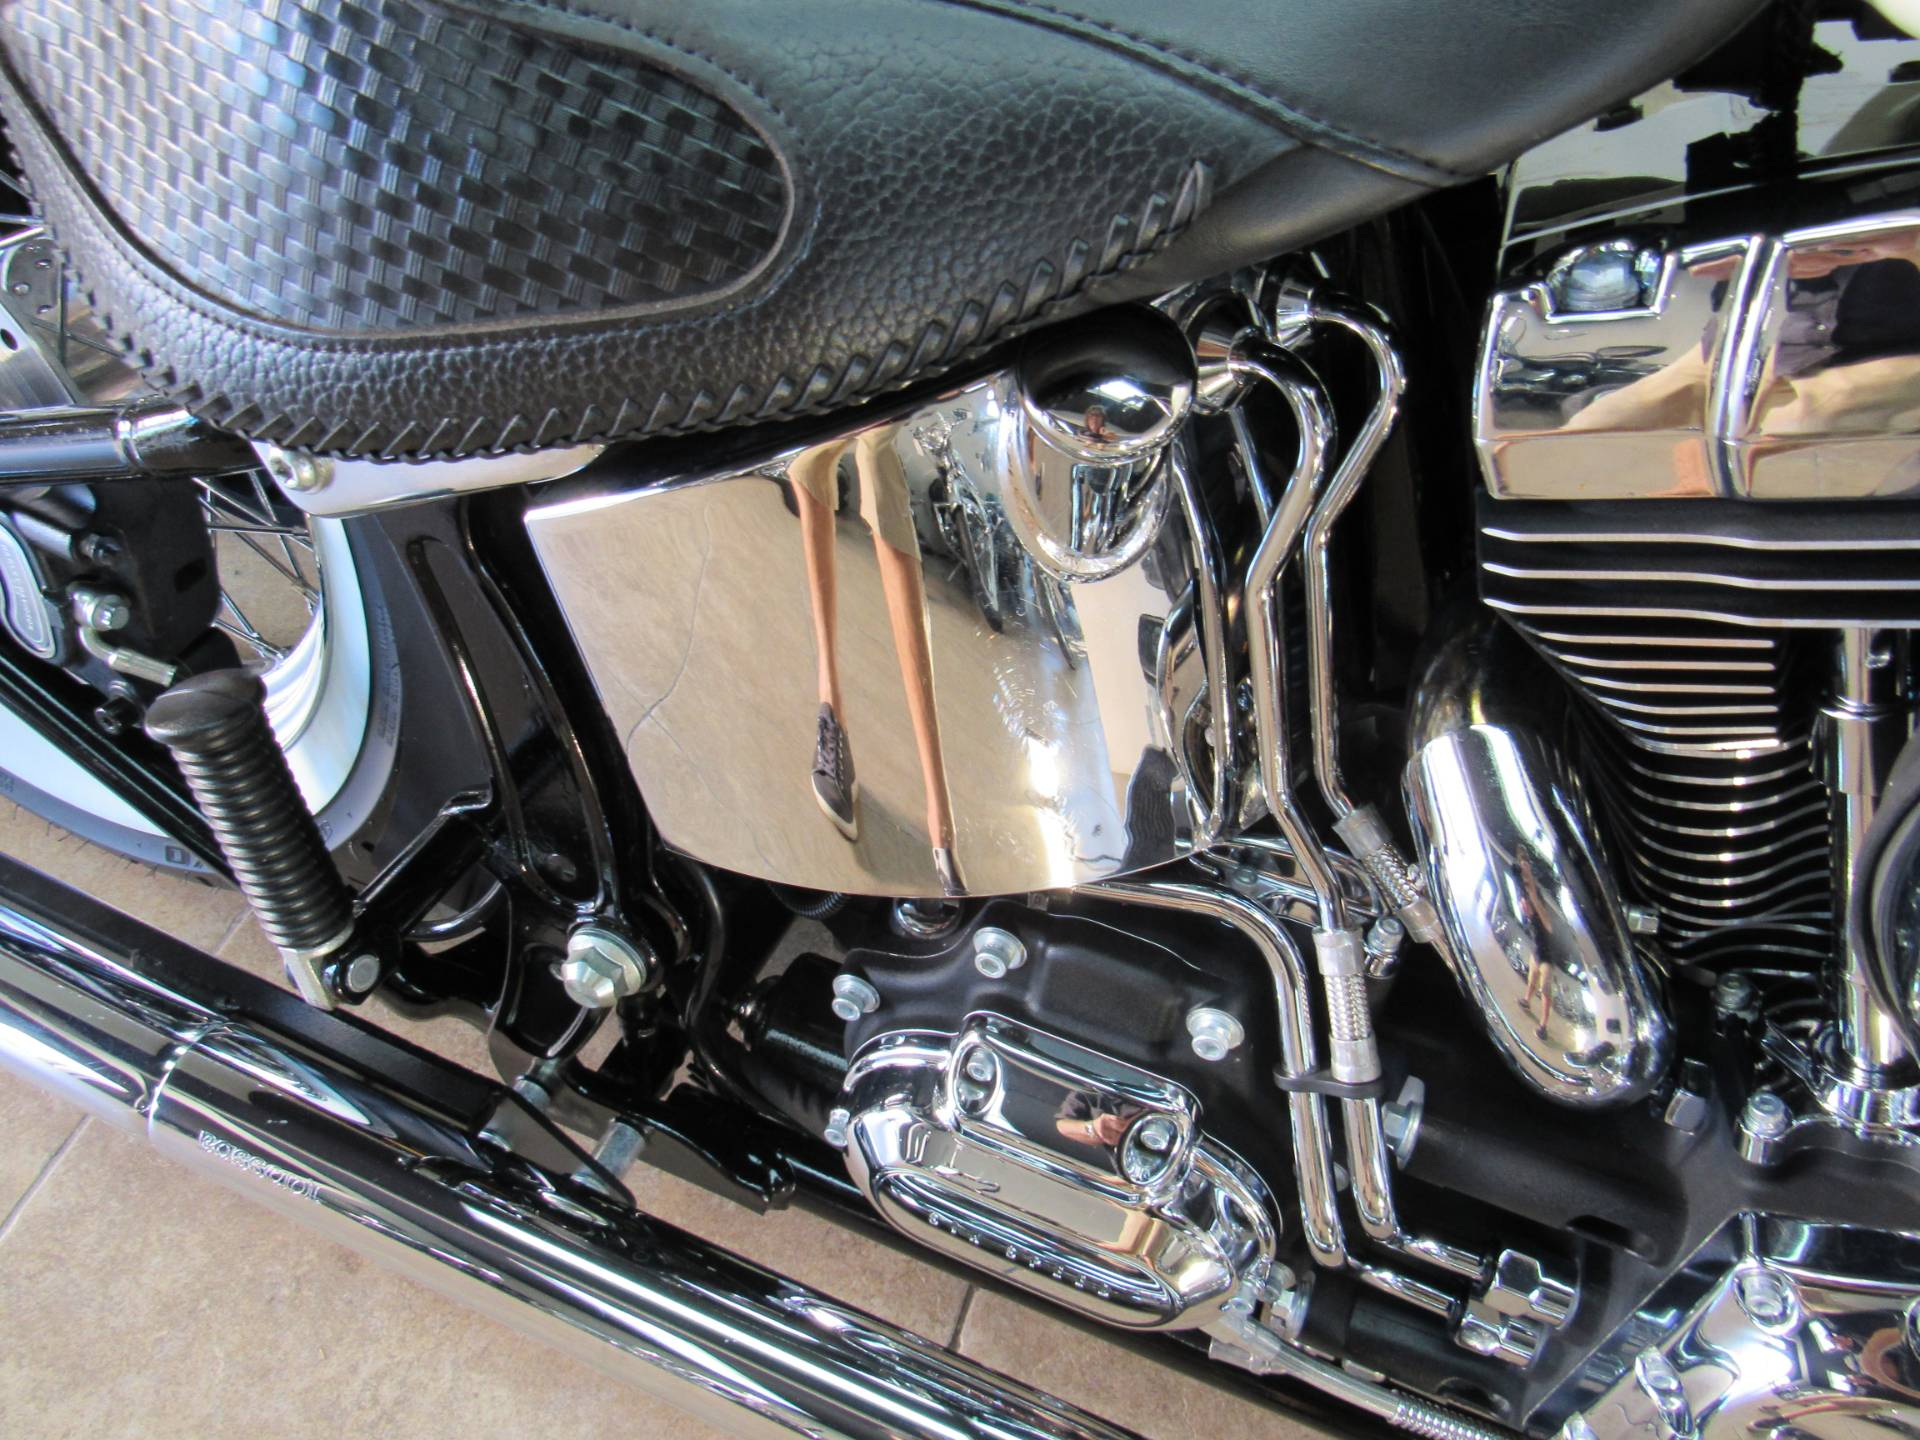 2013 Harley-Davidson Softail® Deluxe in Temecula, California - Photo 39